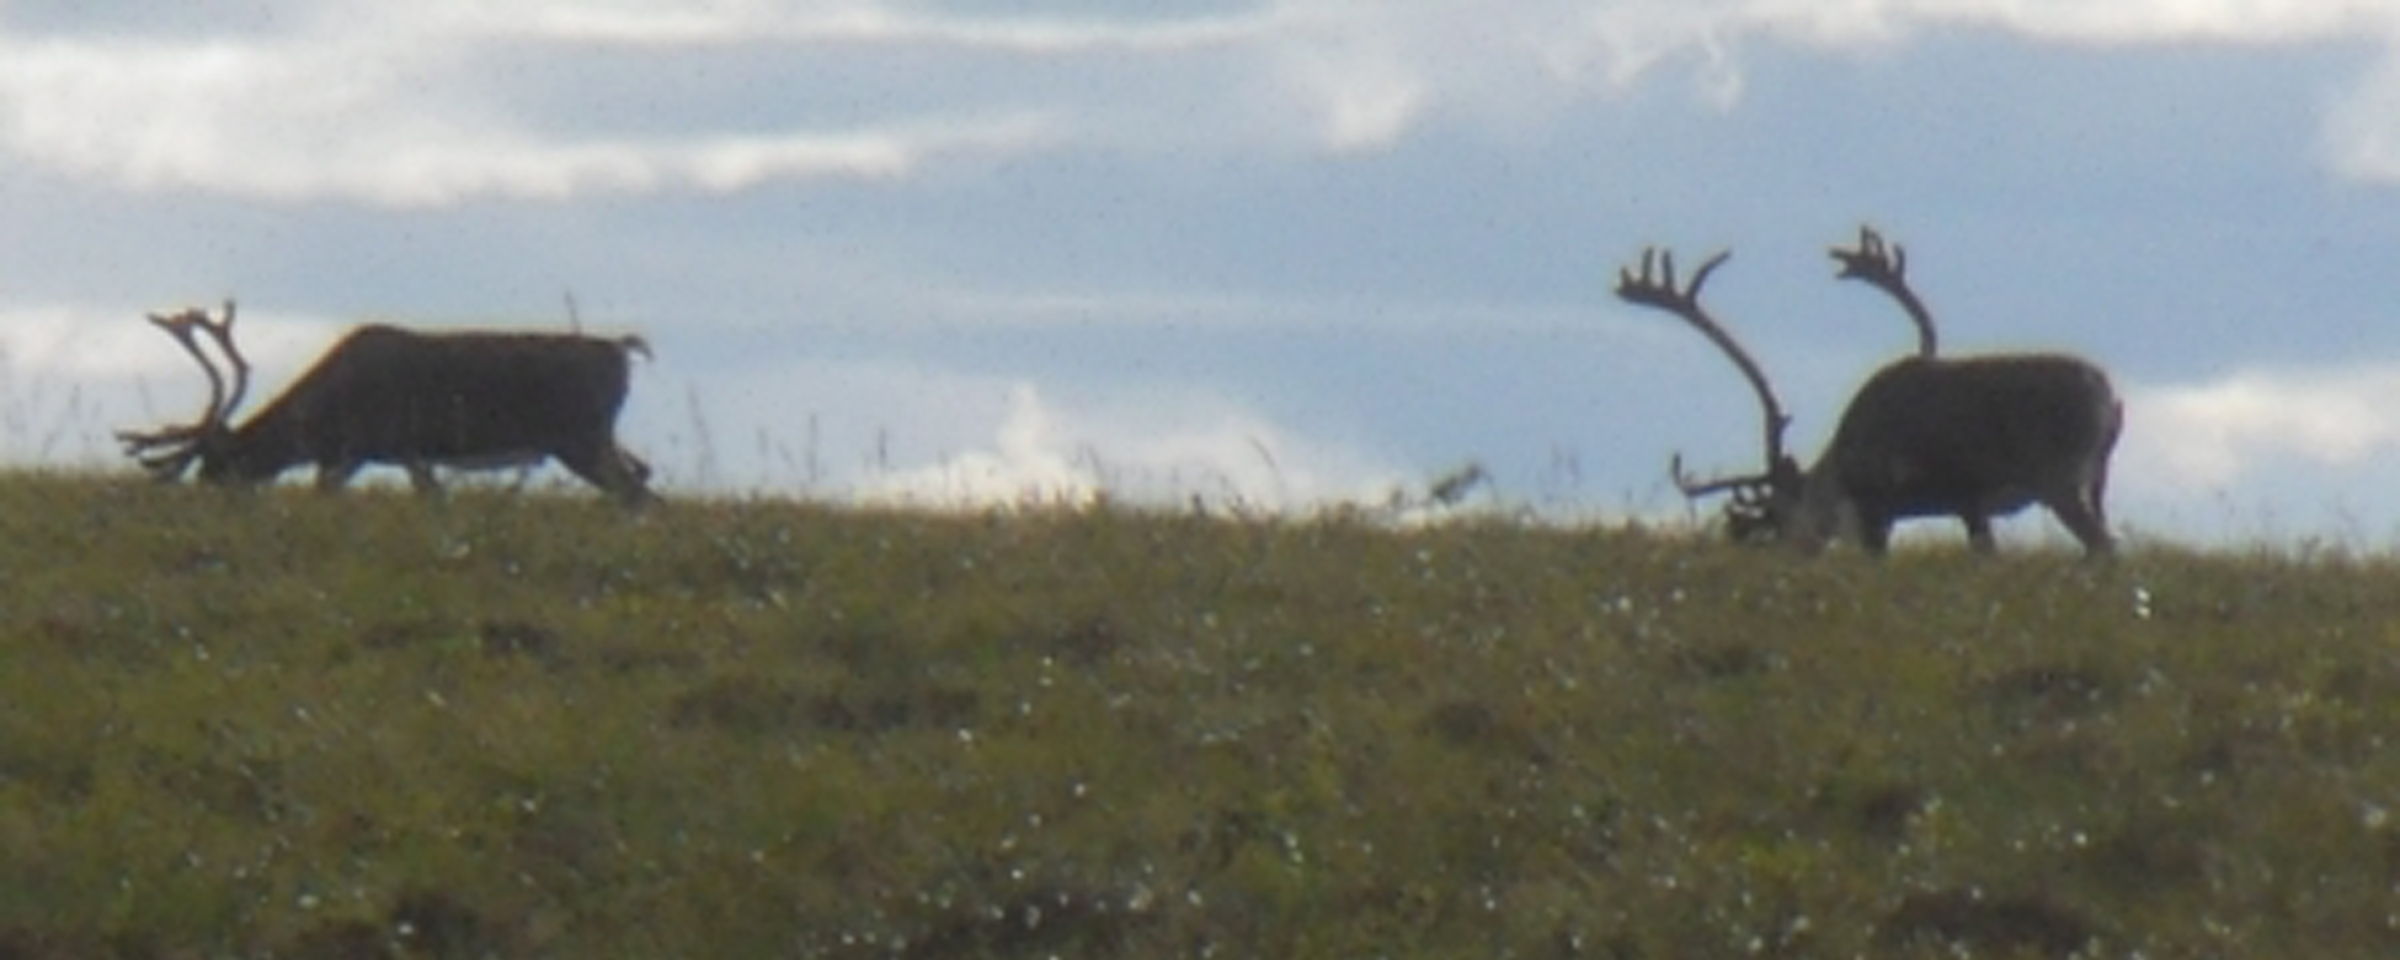 Caribou on the North Slope. Photo by Josh Dugat, courtesy of ARCUS.